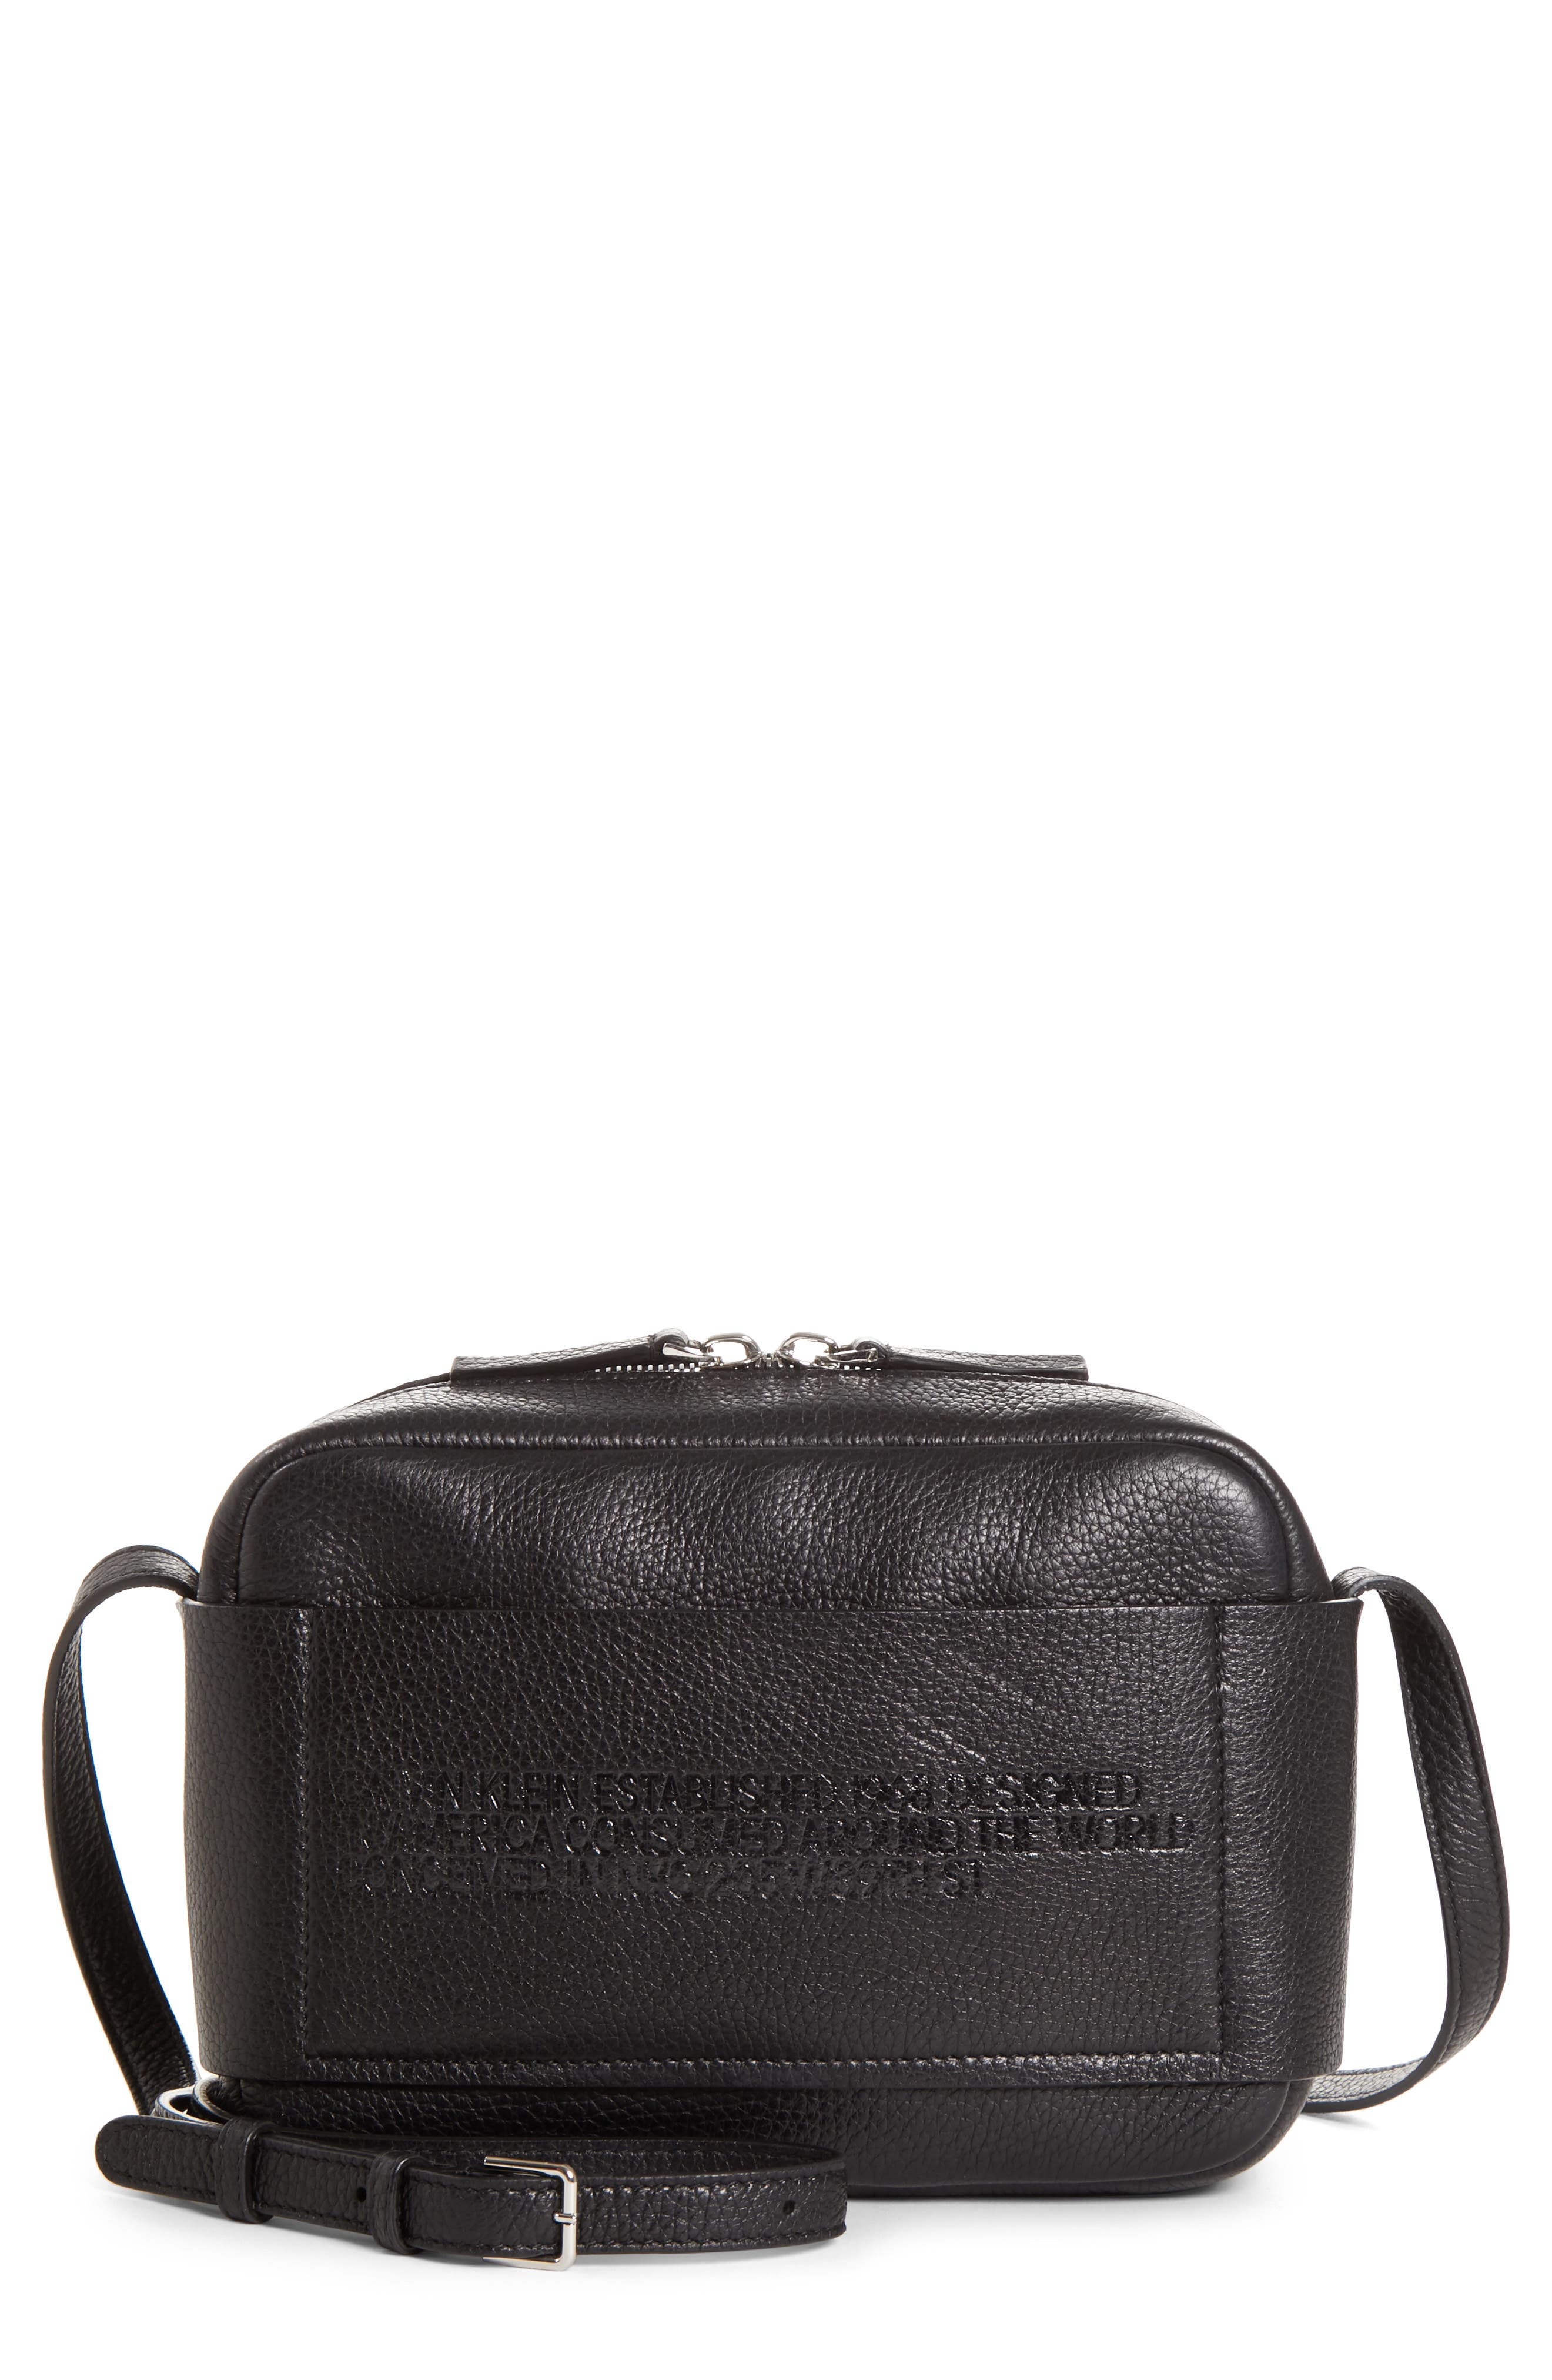 CALVIN KLEIN 205W39NYC Belle Leather Camera Bag, Main, color, BLACK